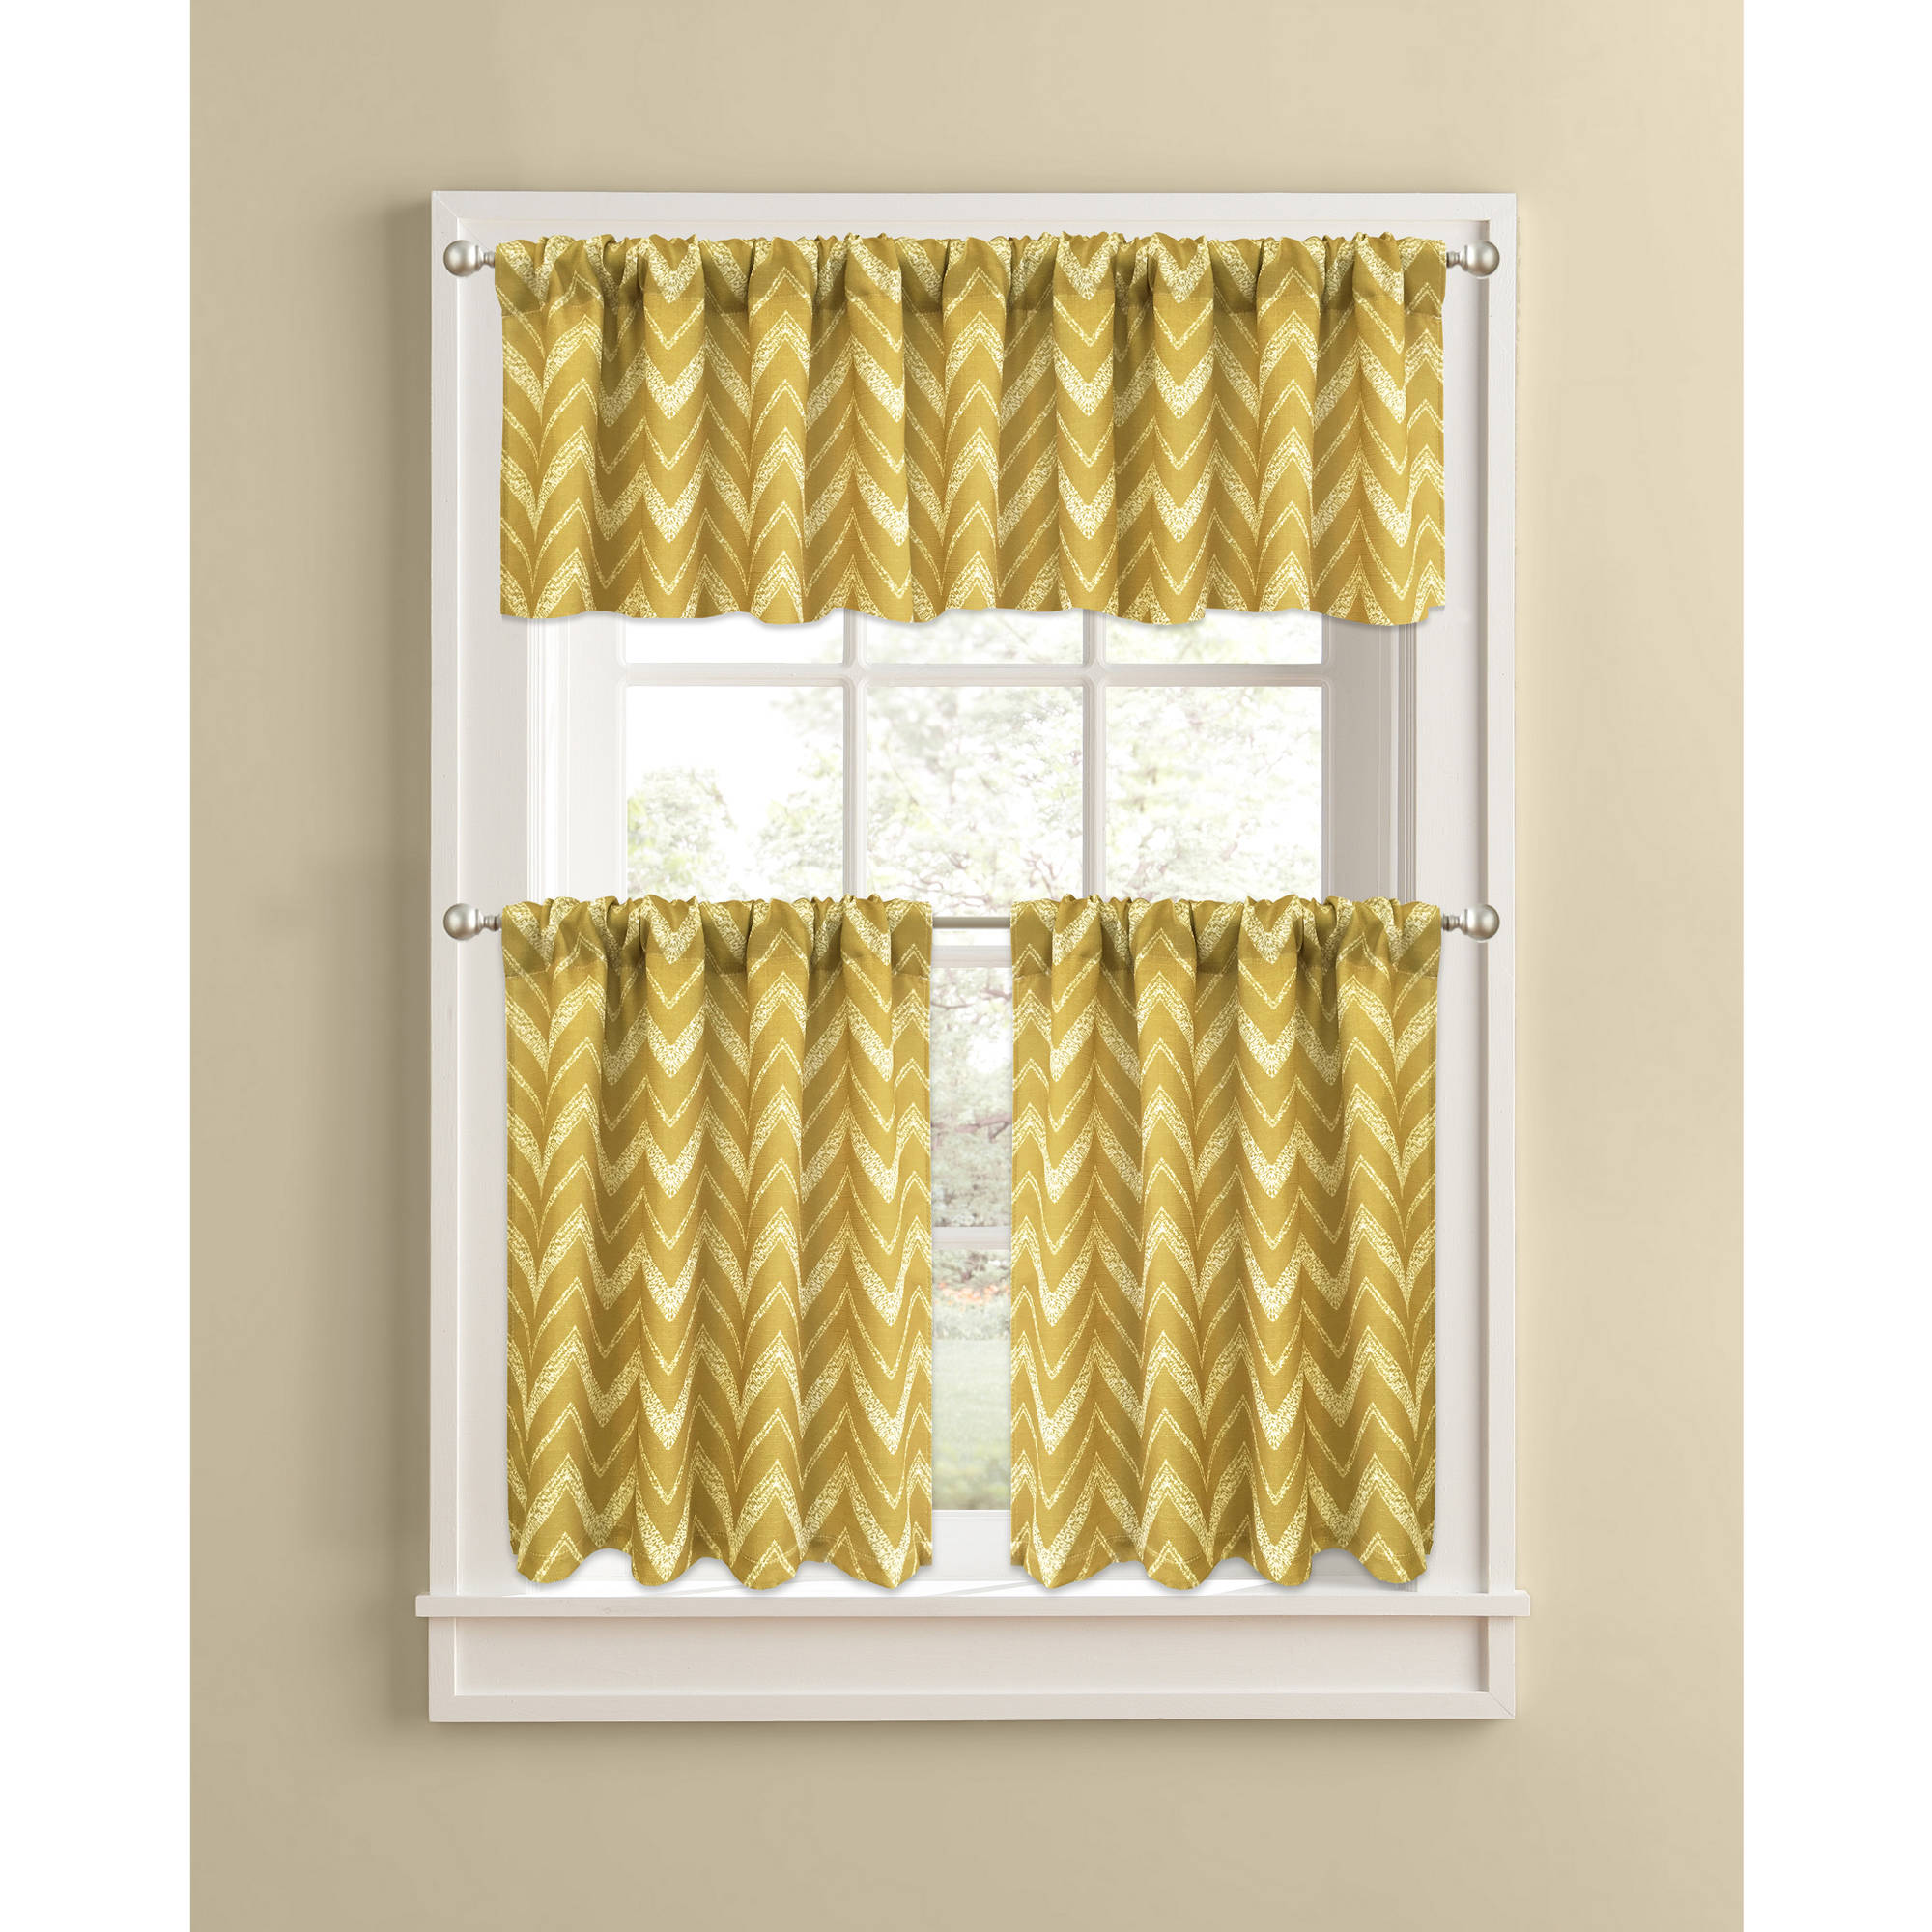 Merveilleux Better Homes And Gardens Gold Chevron Kitchen Curtains, Set Of 2